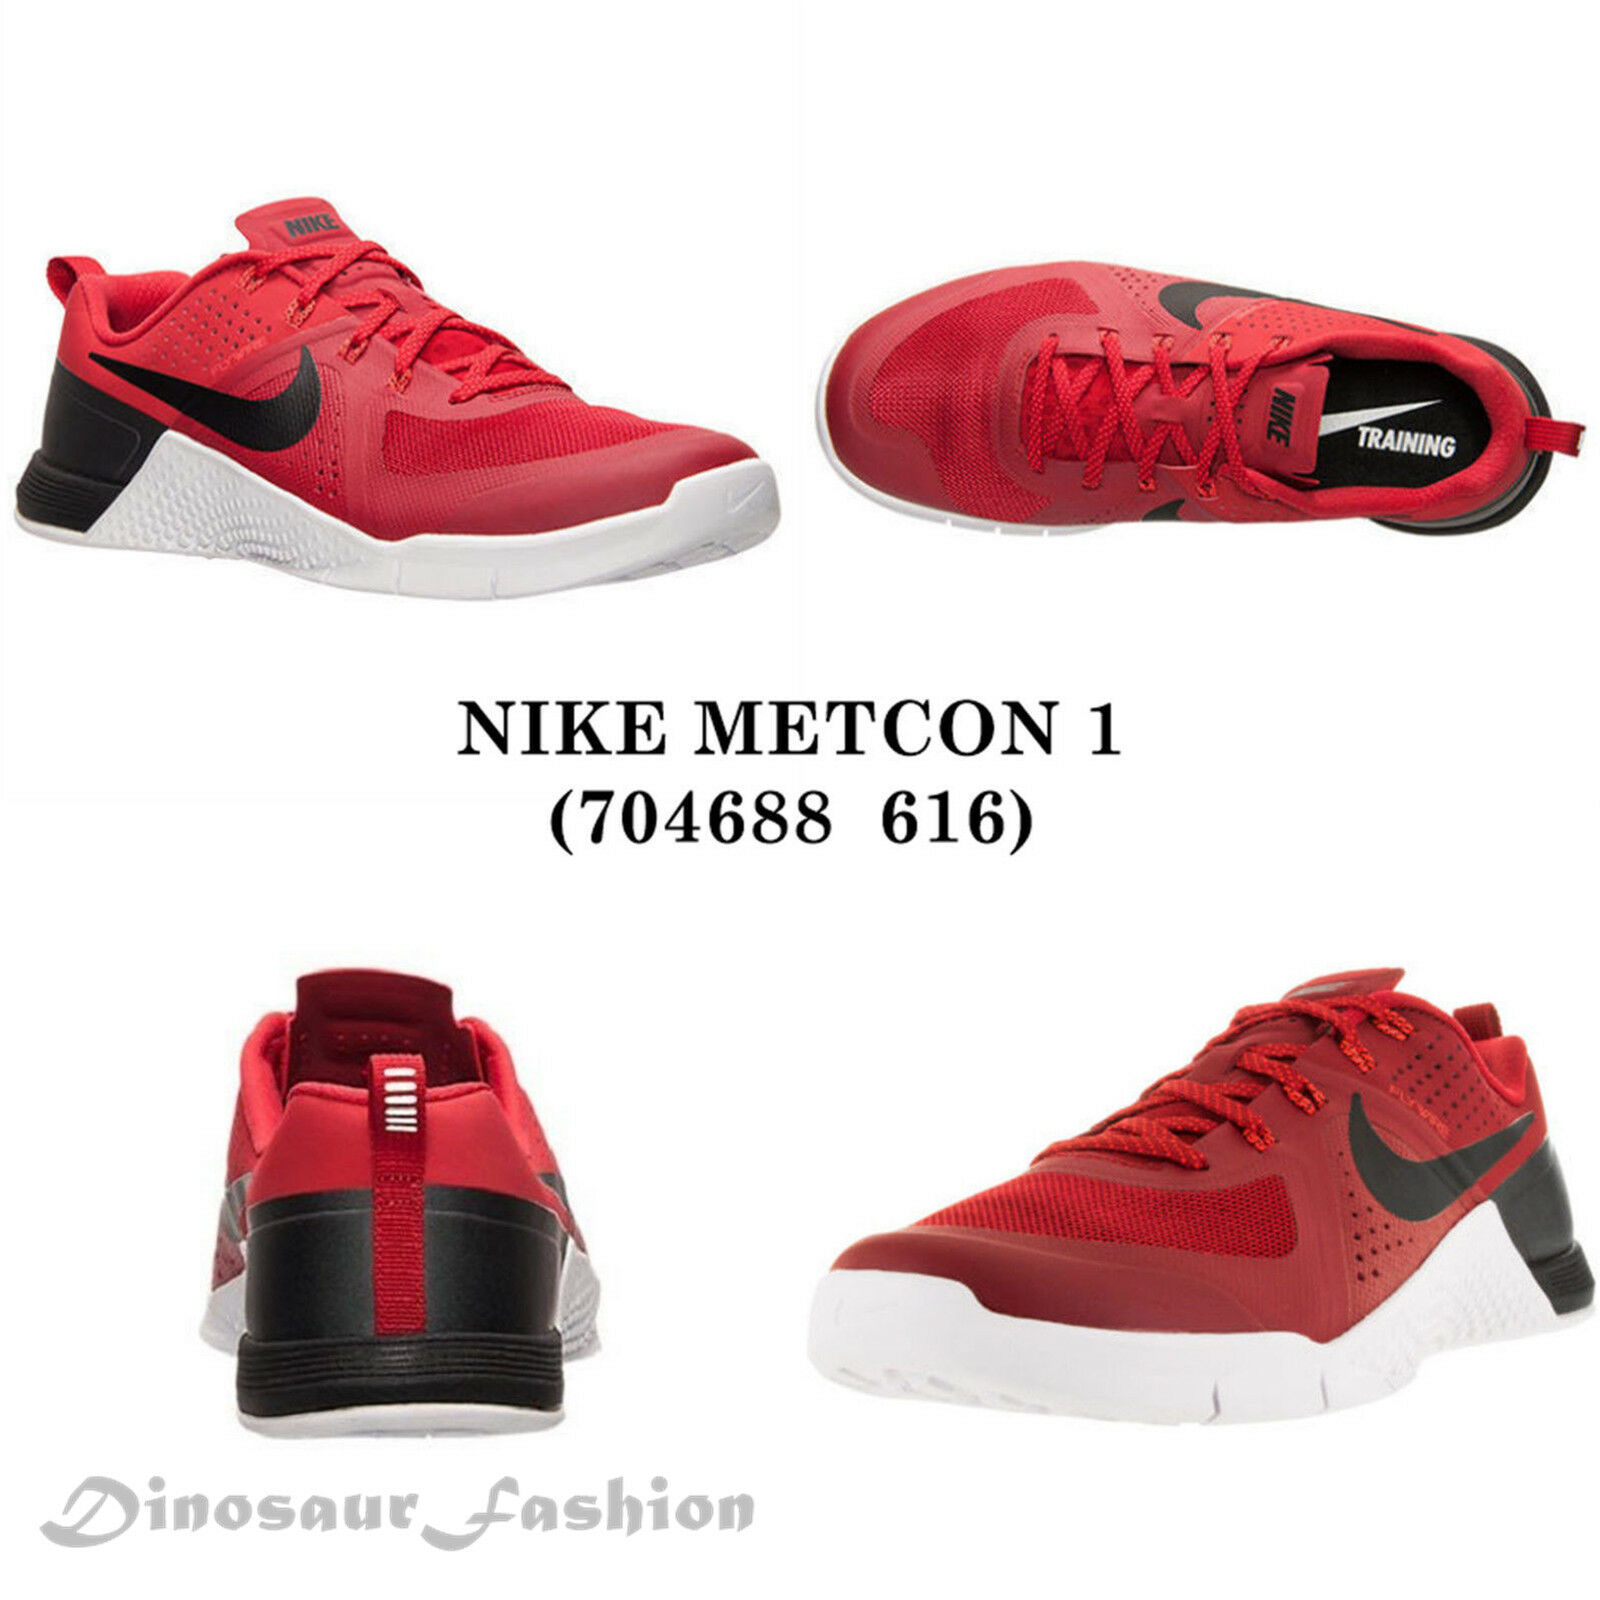 NIKE METCON Chaussures 1  Hommes Training Chaussures METCON  New with box,NO LID 54d4a2